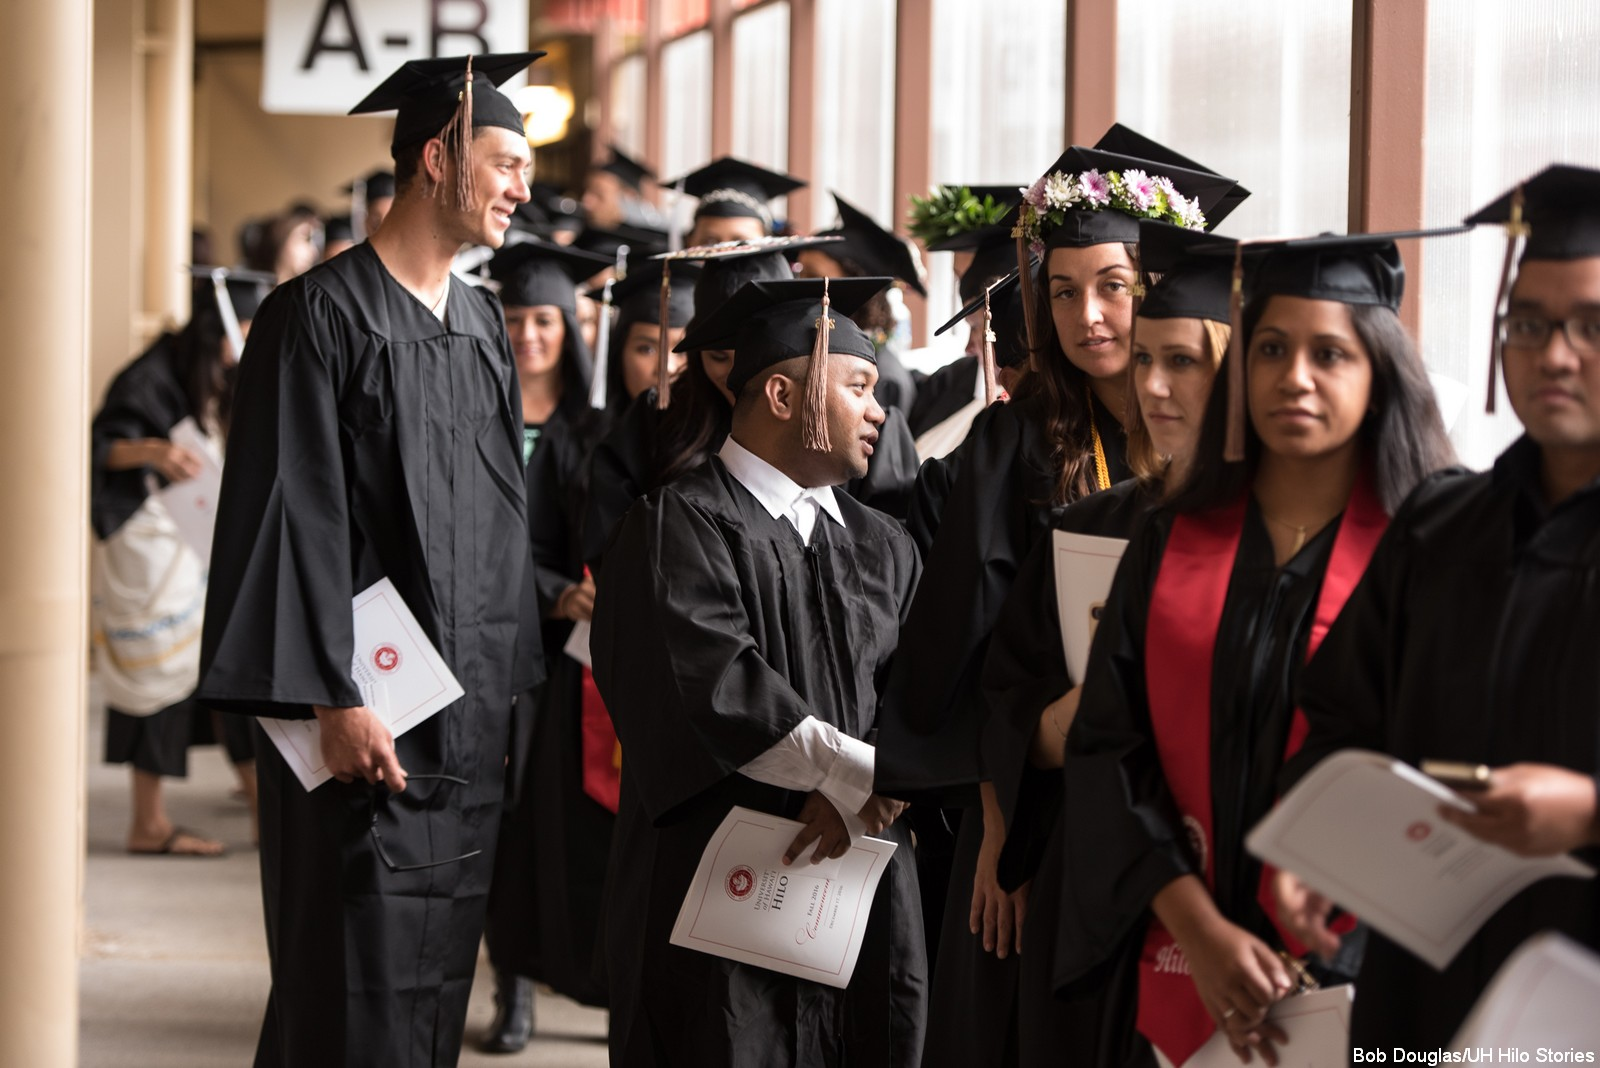 Candidates in cap and gown wait in line to enter venue.